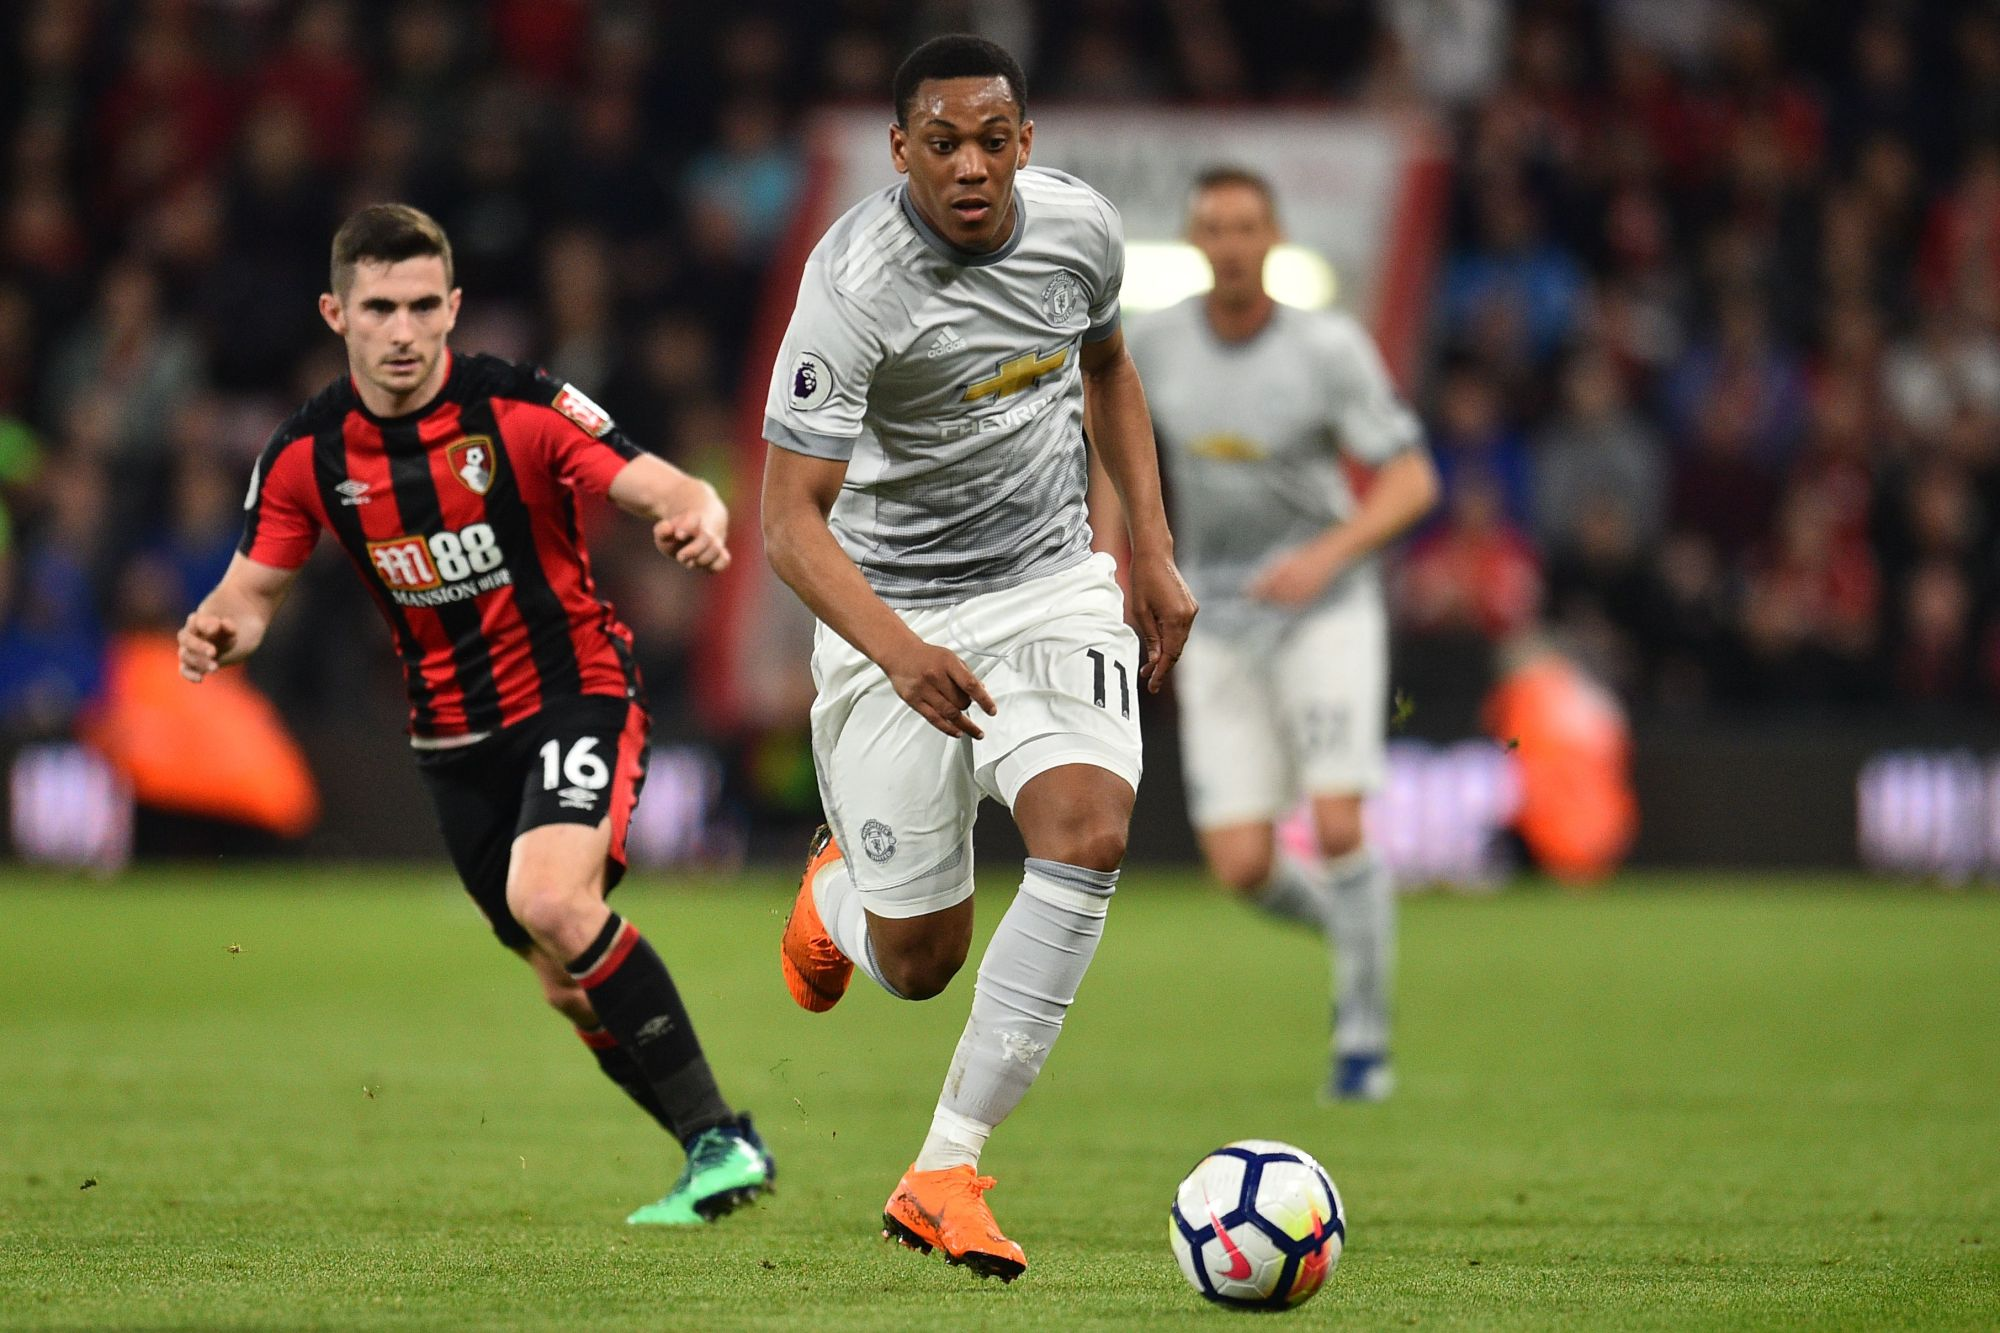 Manchester United's Anthony Martial moves the ball against Bournemouth in Premier League action on Wednesday night. | AFP-JIJI